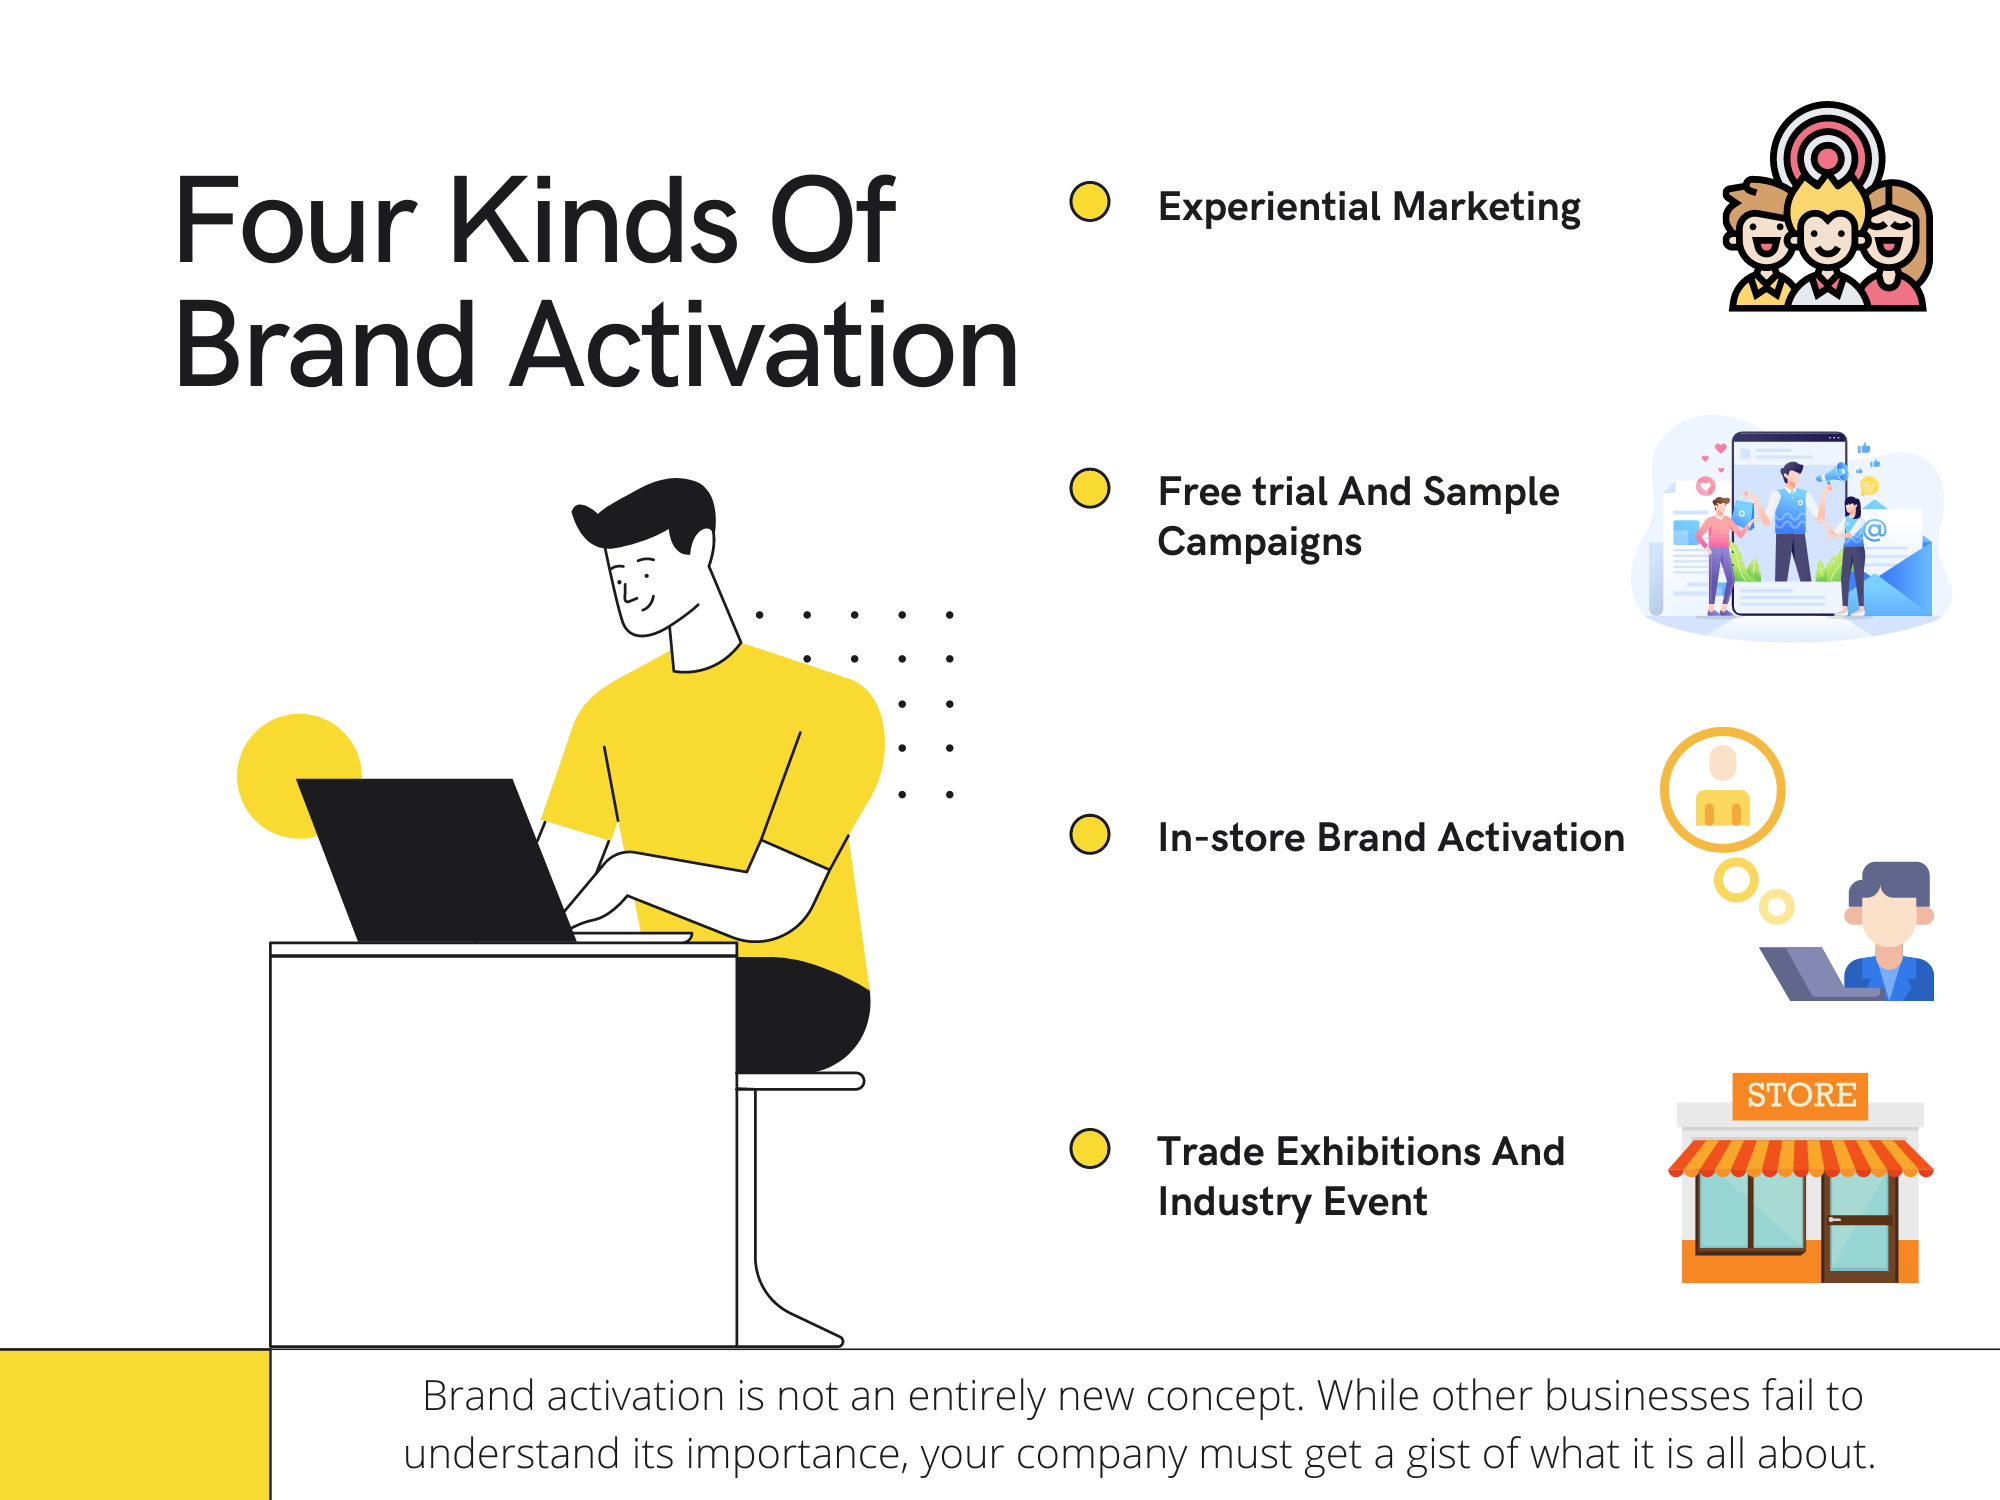 Four-Kinds-Of-Brand-Activation